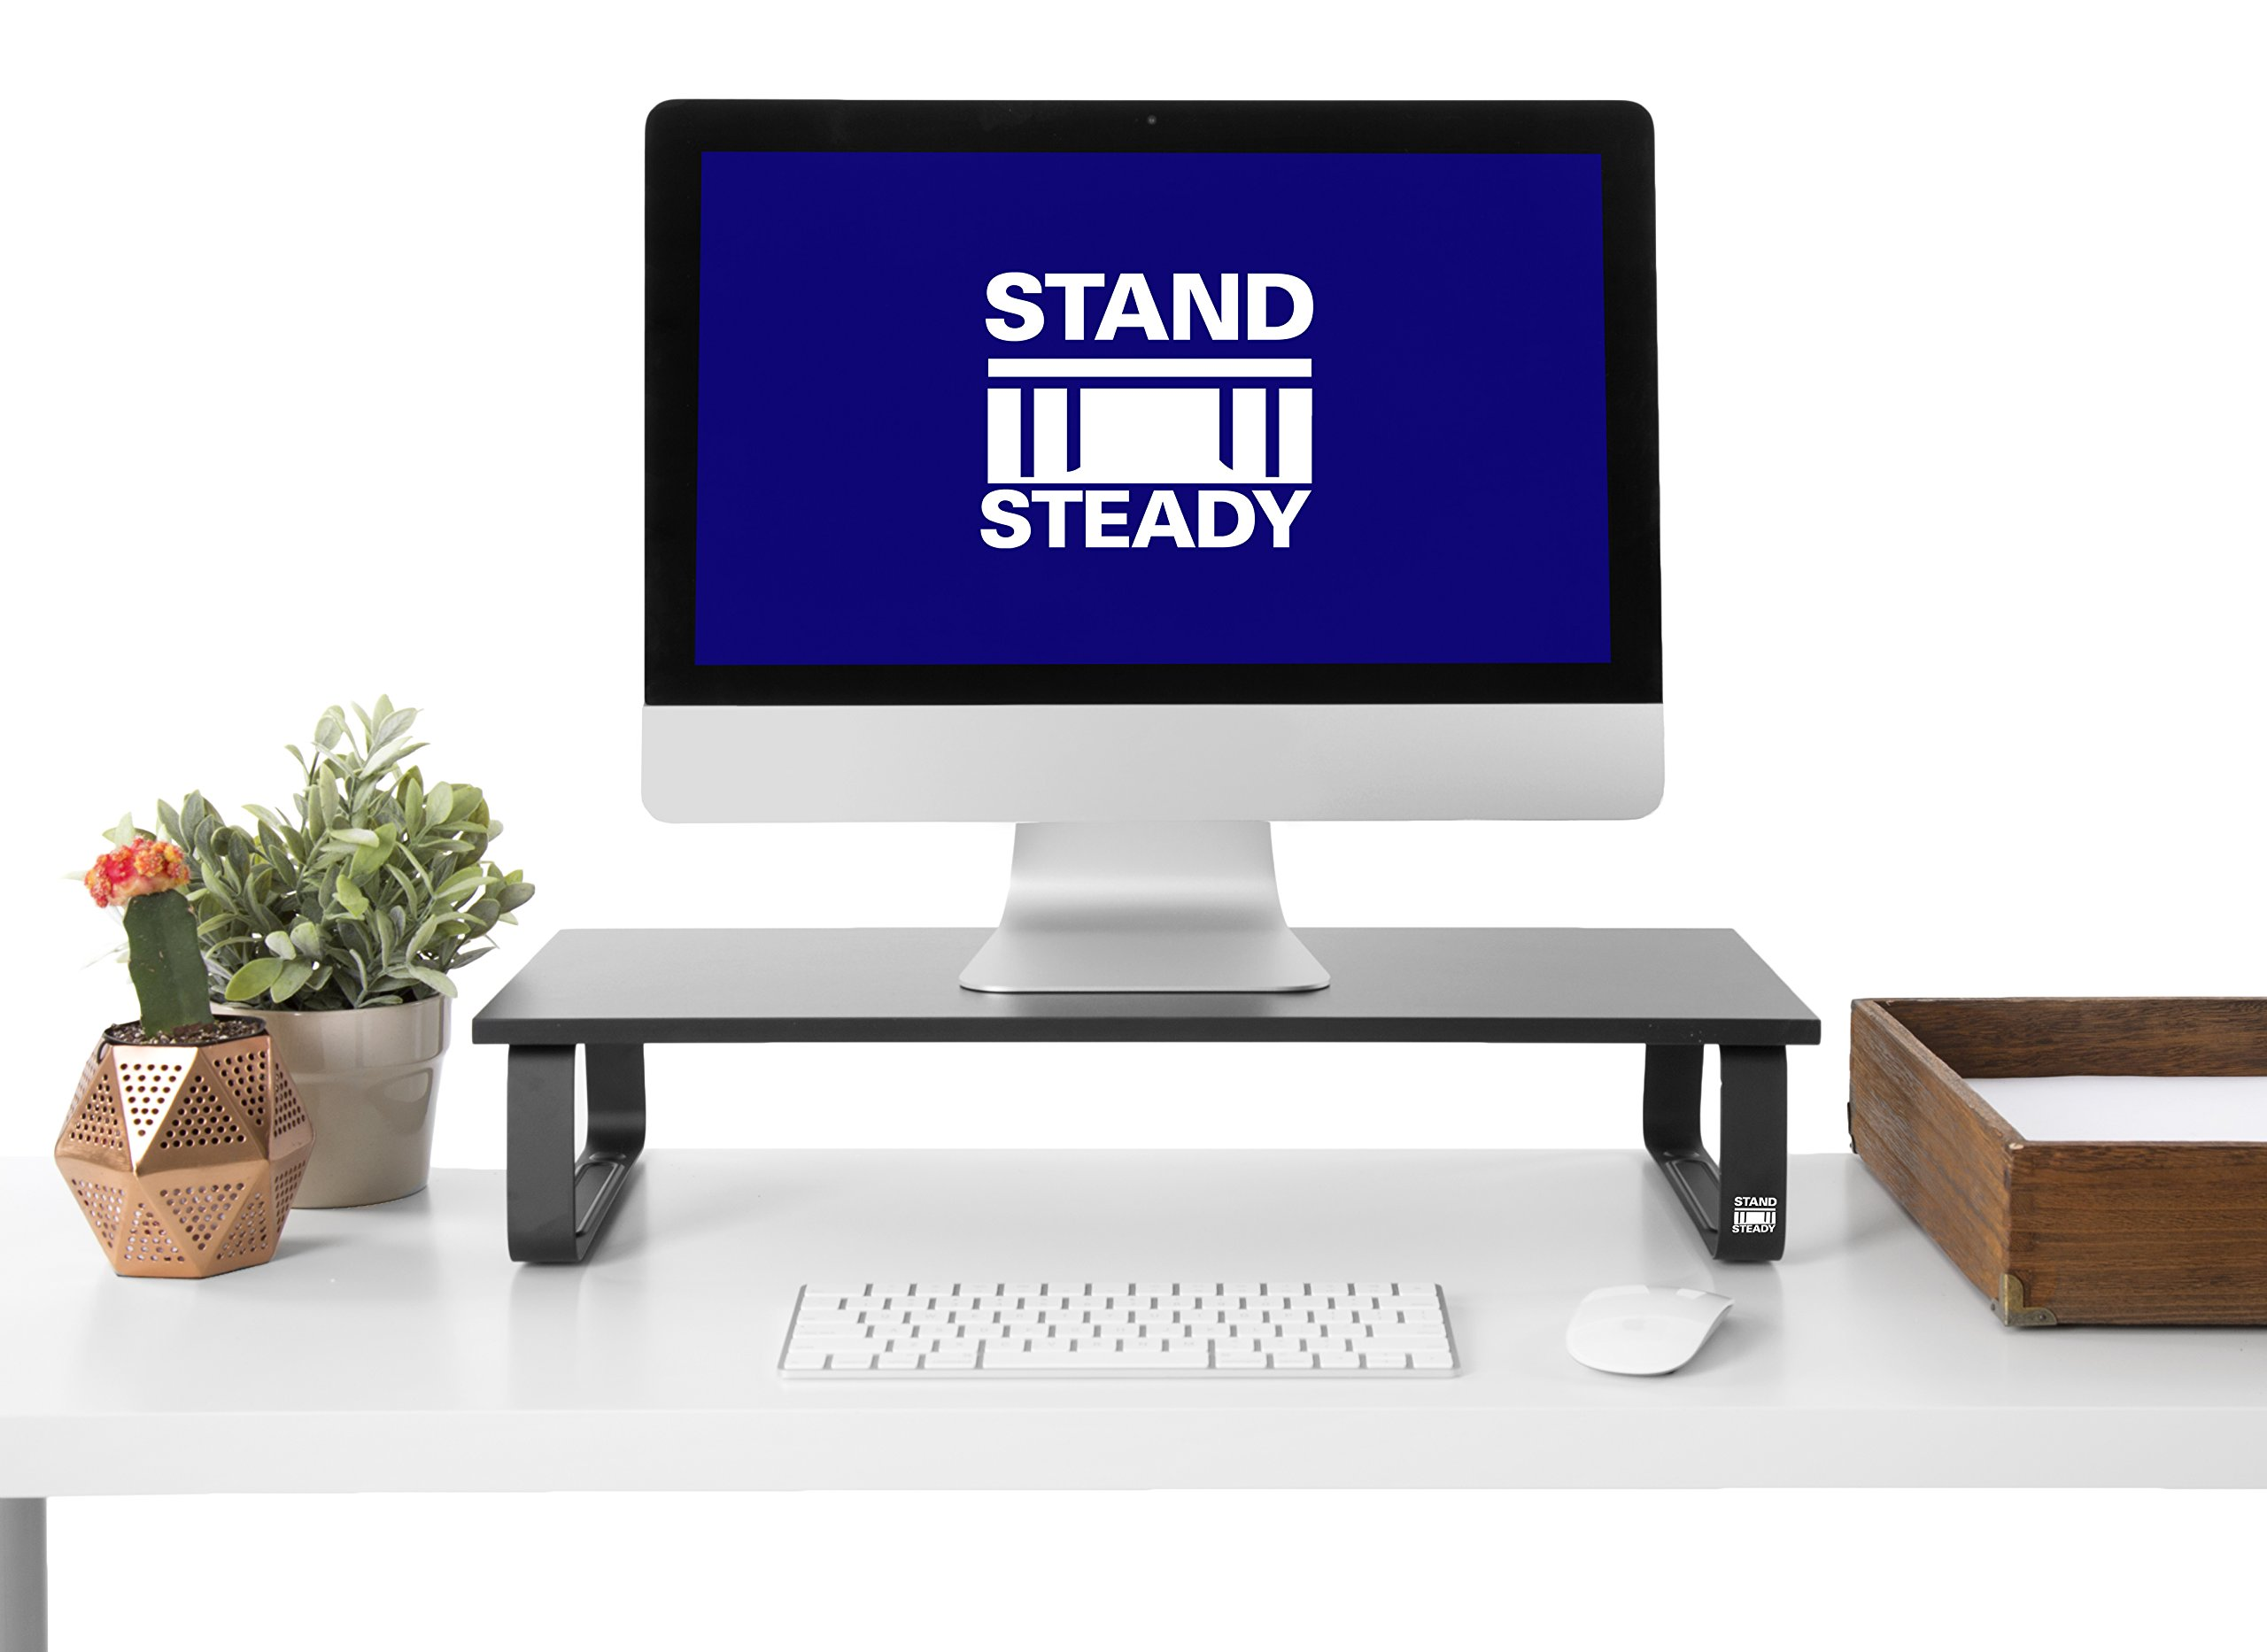 JUMBO Monitor Stand by Stand Steady - Desk Shelf with 4 Padded Feet - 4.75 inches high! Perfect Size for your desk!